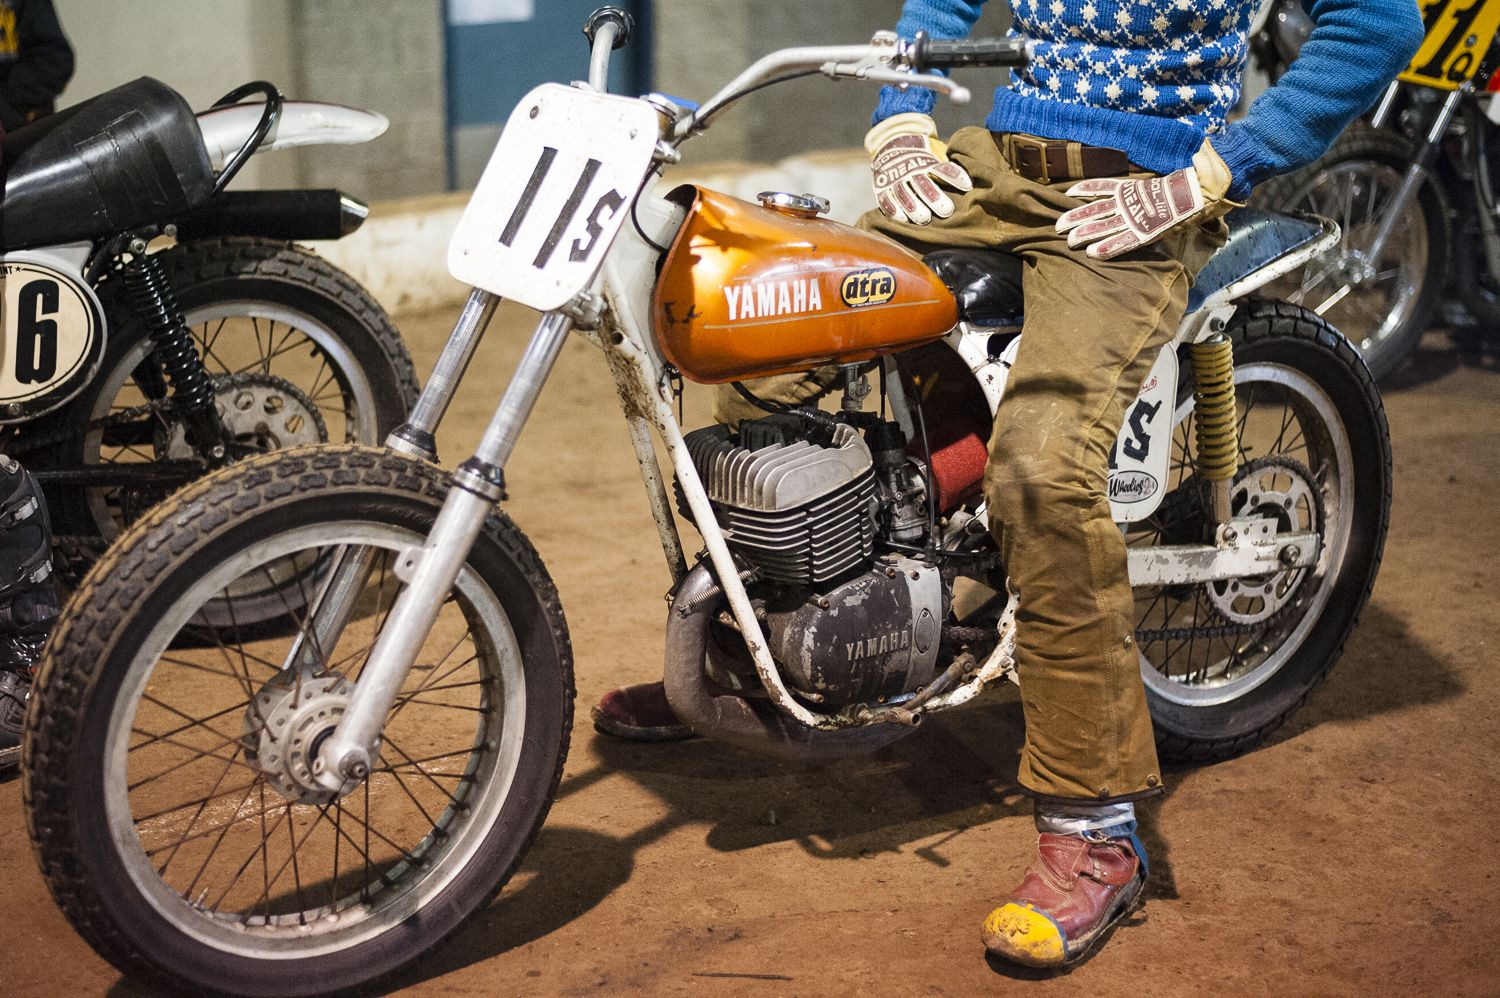 Photo gallery from The One Show, a custom bike exhibit organized by See See Motor Coffee Co. in Portland, Oregon.